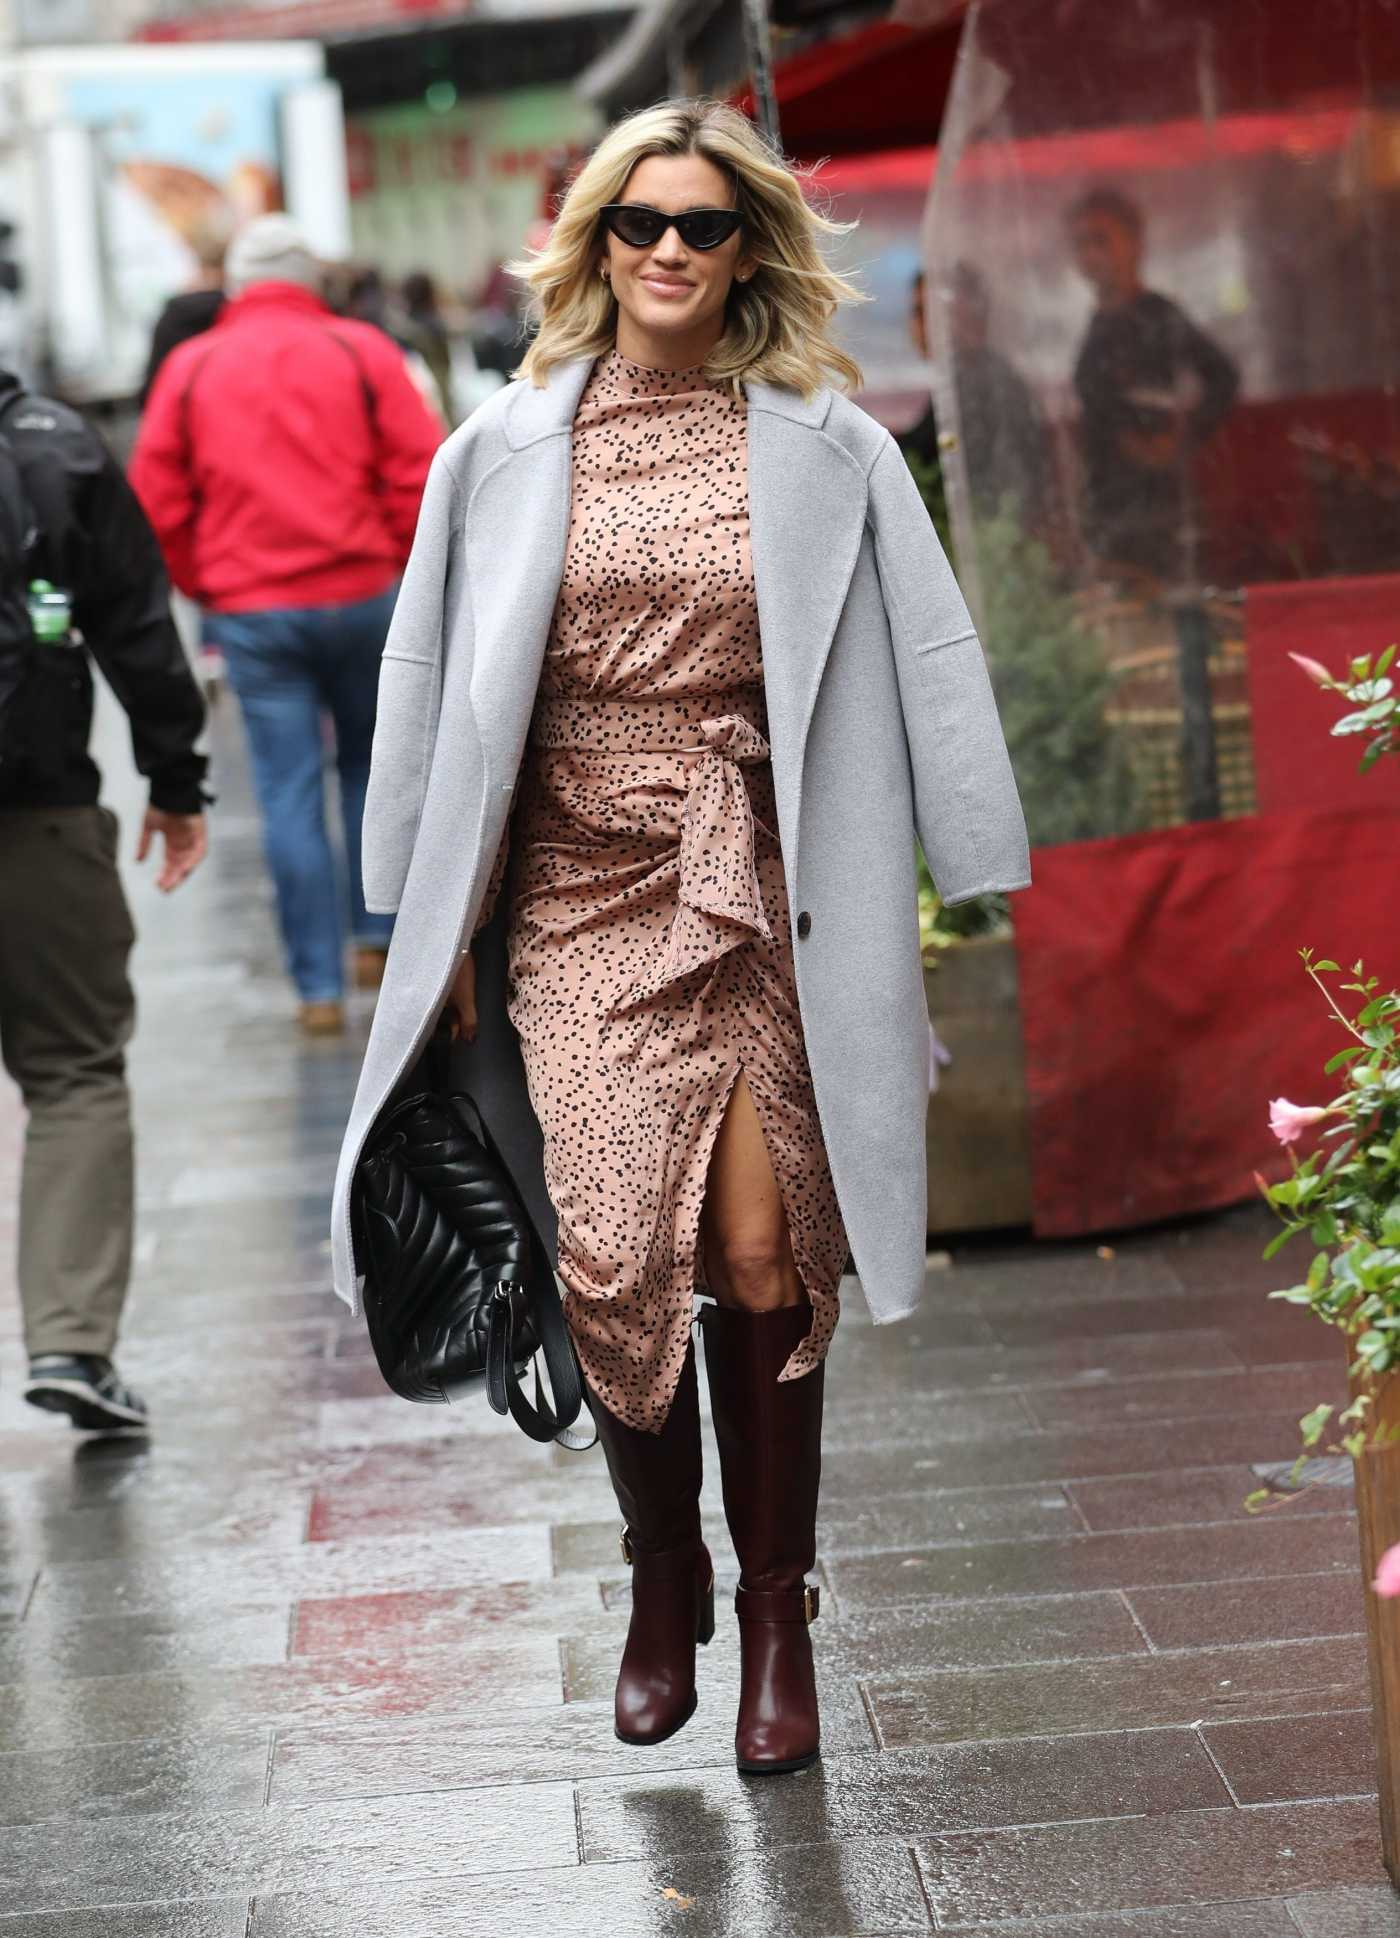 Ashley Roberts in a Gray Coat Exits Heart Radio in London 11/01/2019